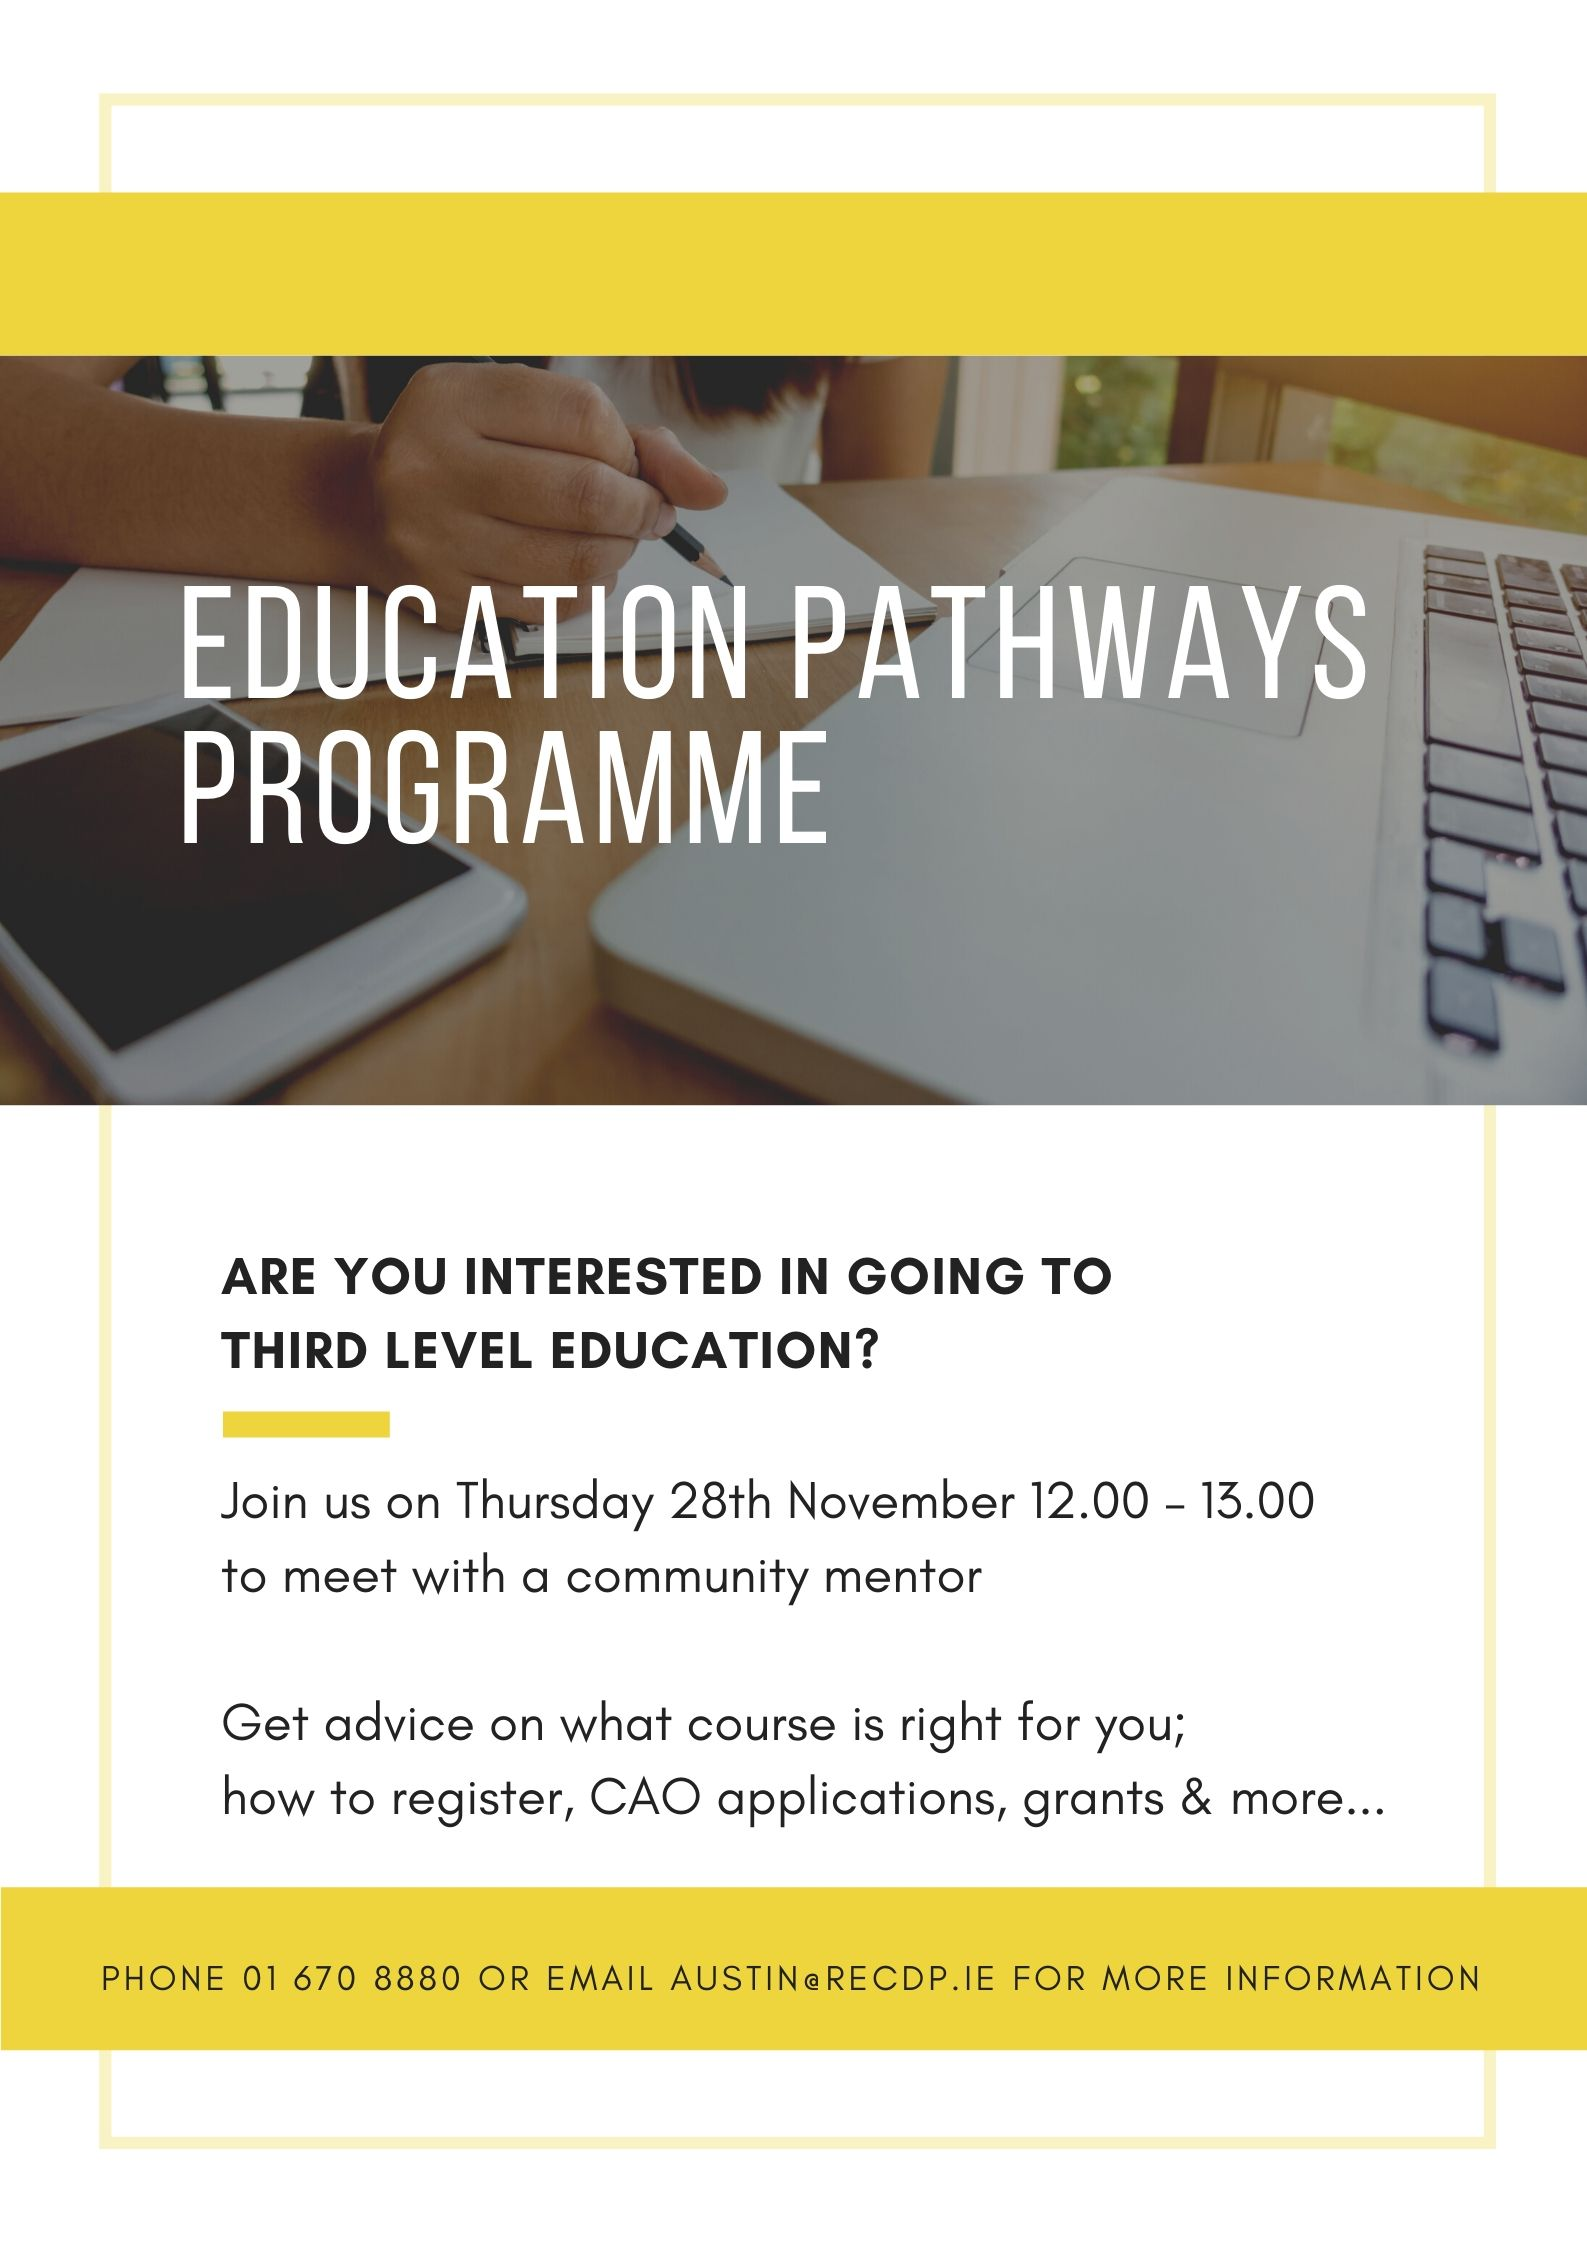 Education Pathways Programme 3jpg